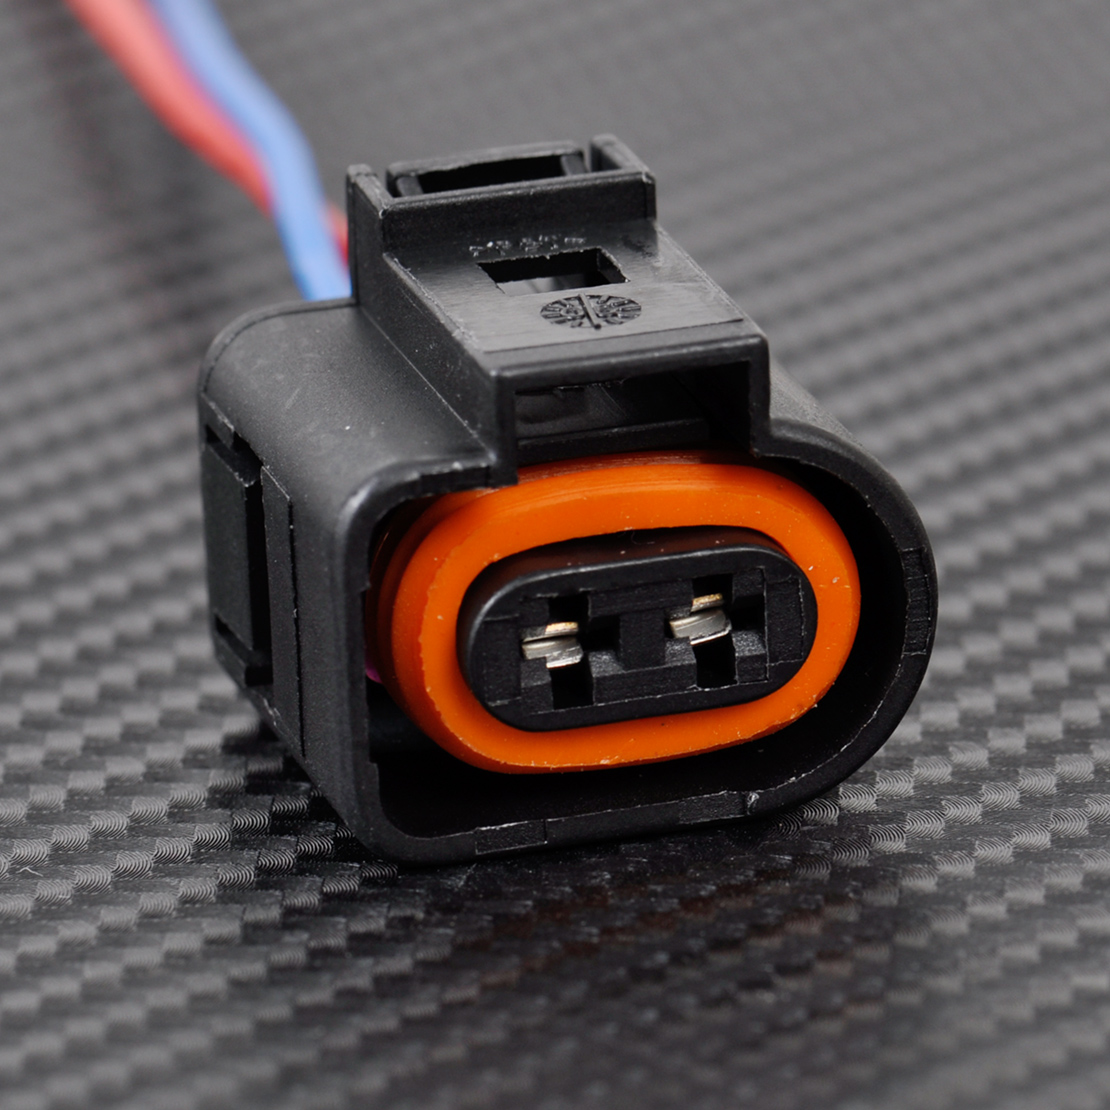 1j0973702 Electrical Harness 2 Pin Plug Connector Wiring Fit Vw Audi Connectors 2004 2009 Ebay